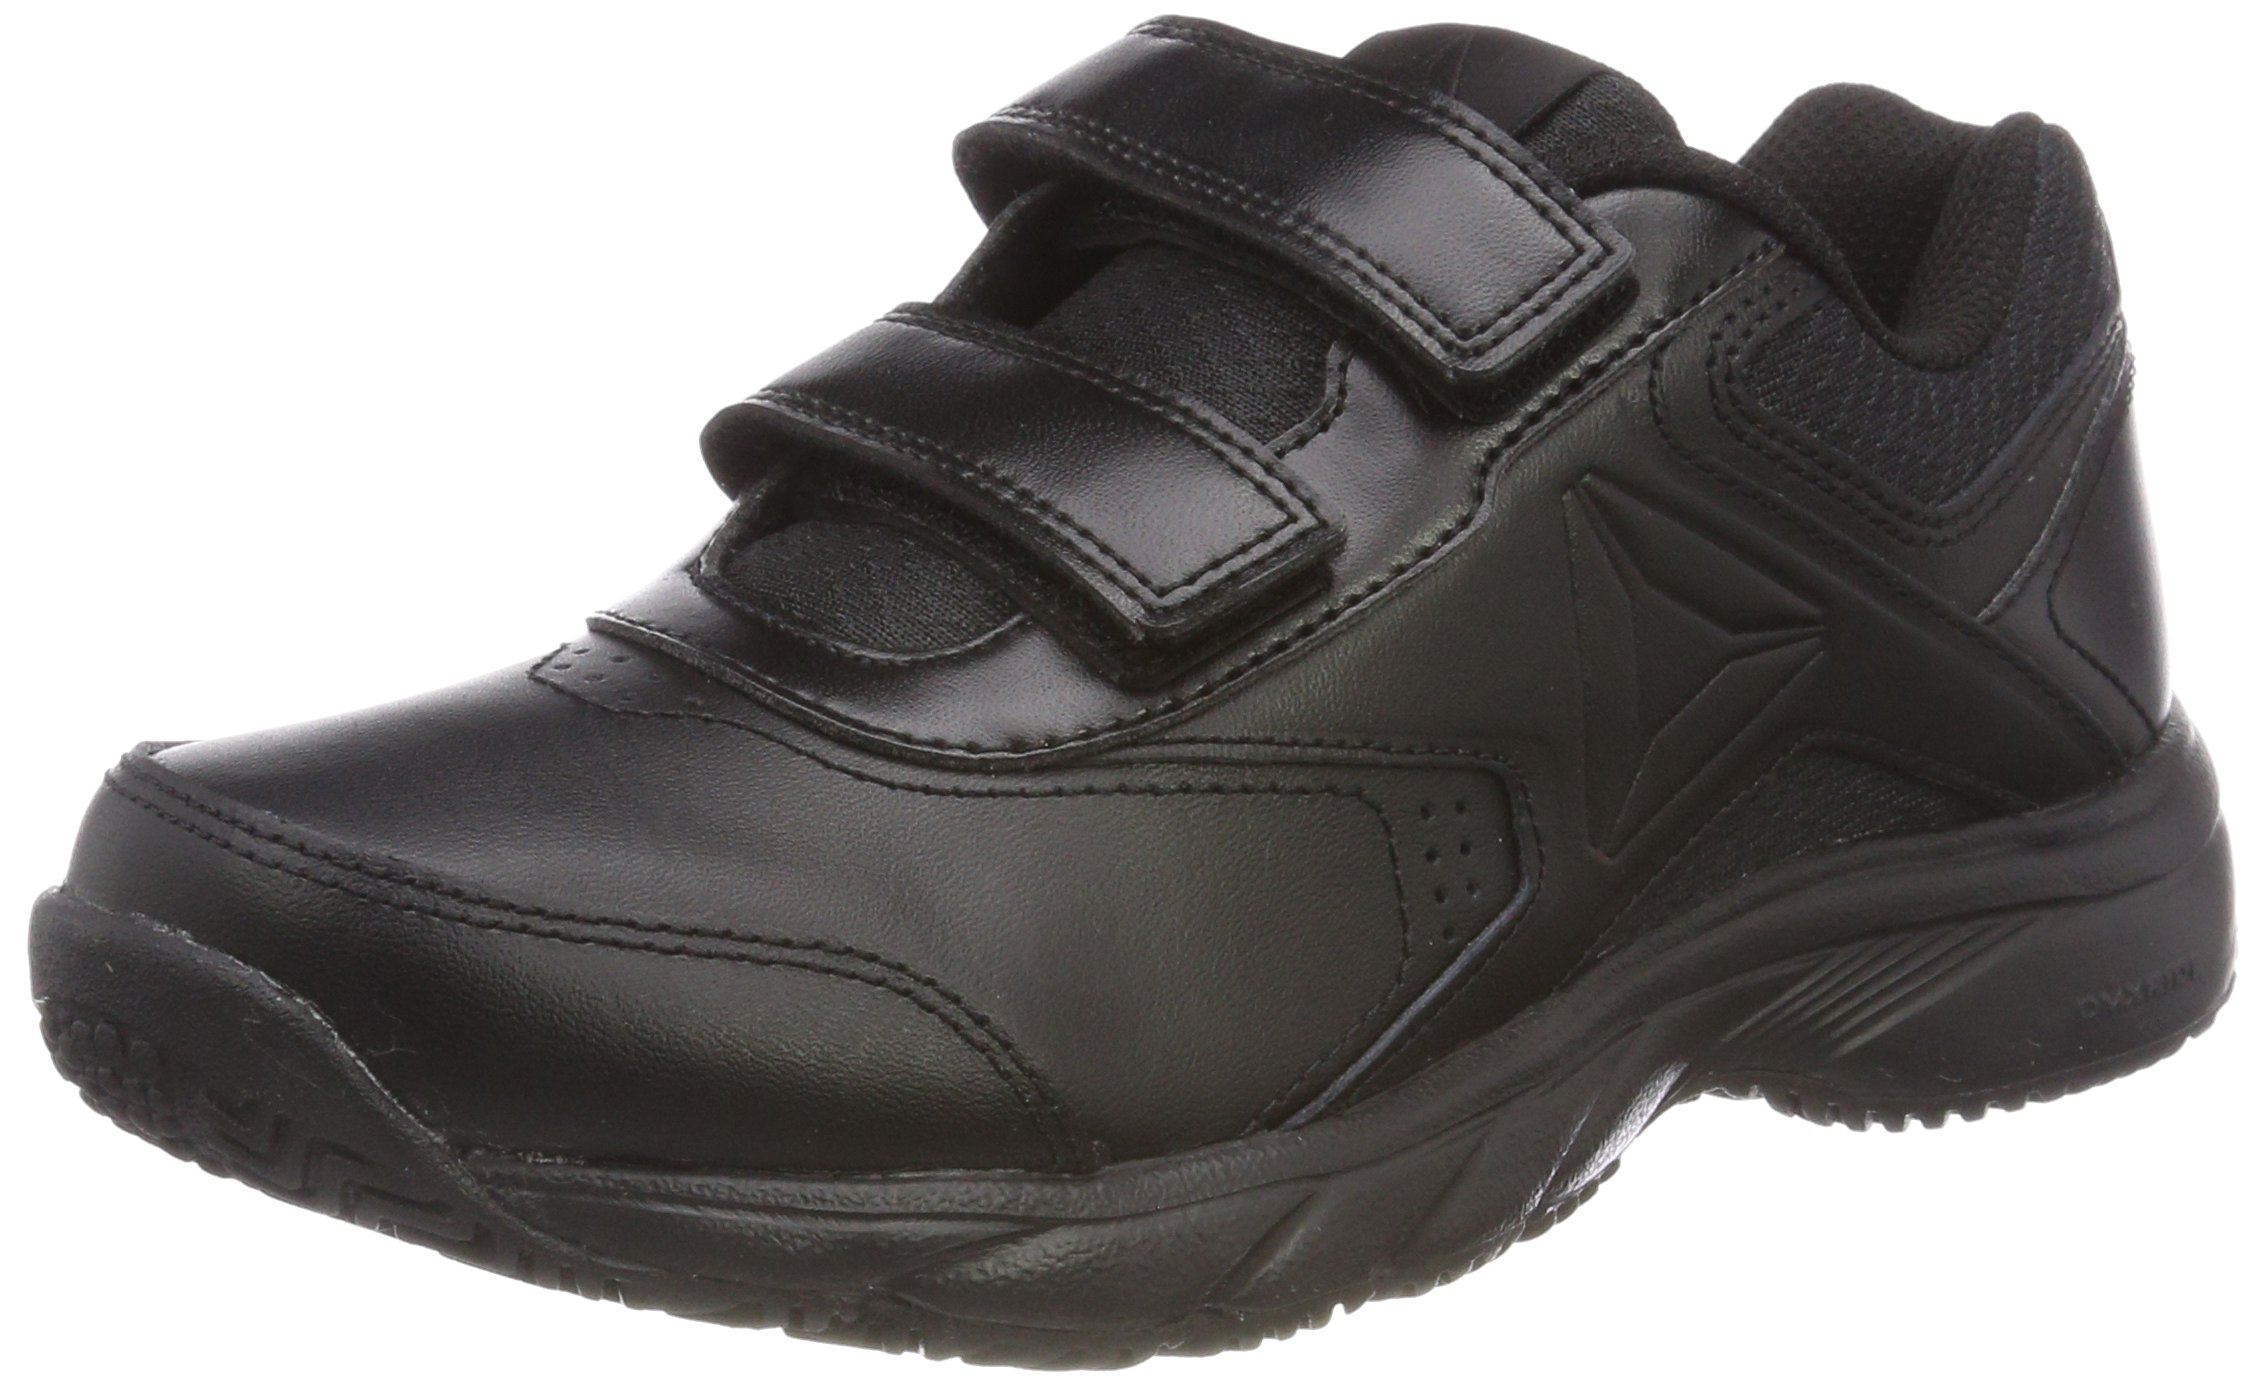 Eu Fitness FemmeNoir Black KcChaussures N Work 3 0 Reebok De 00042 Cushion nP80wkXO